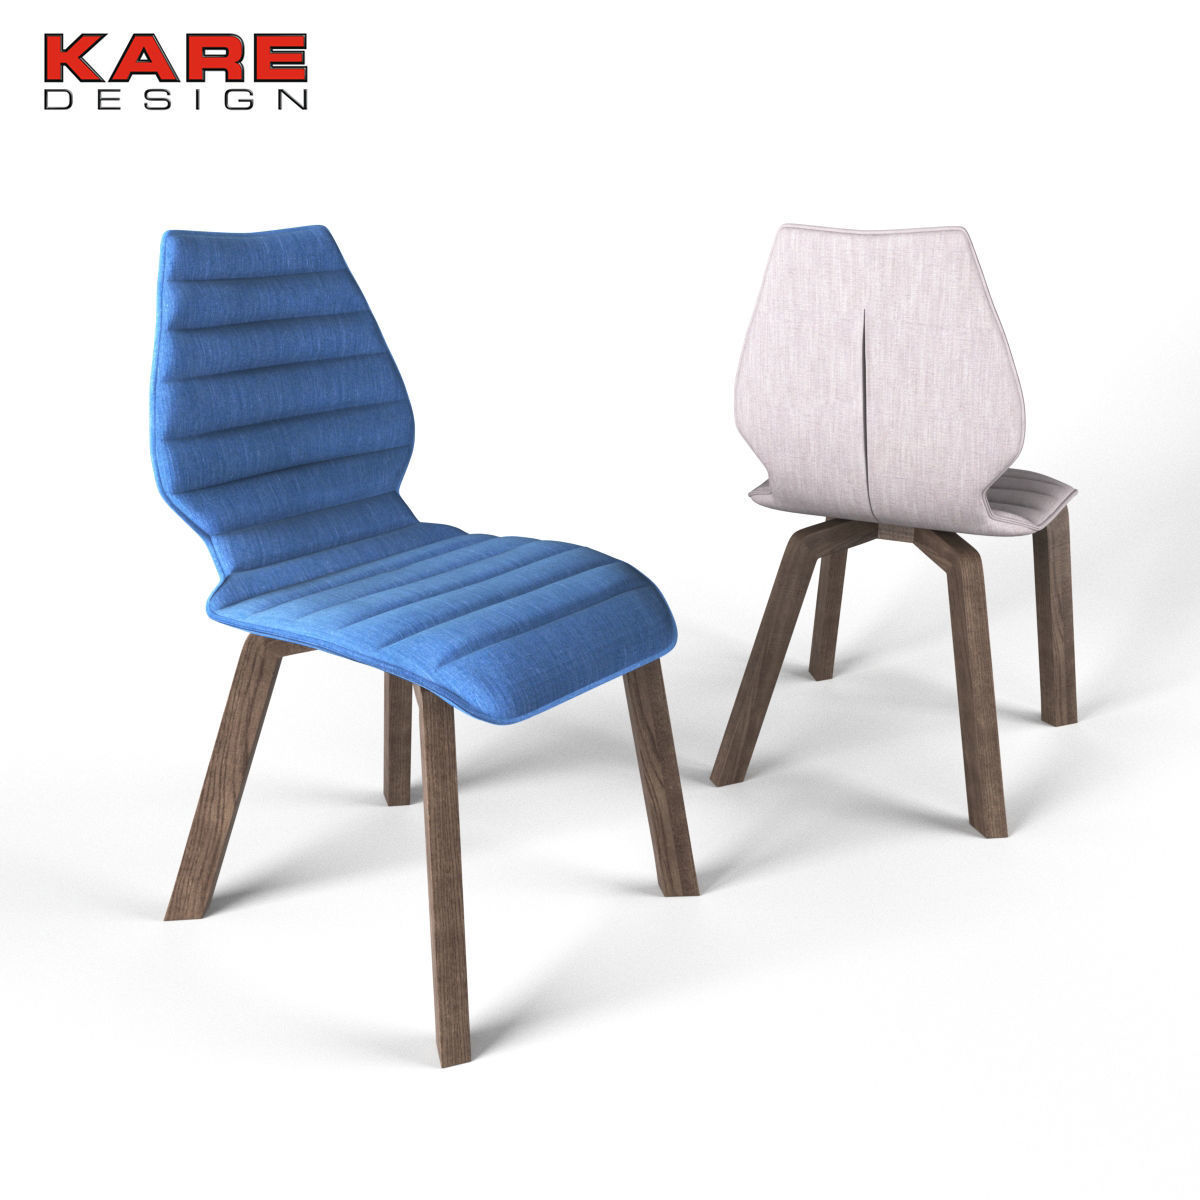 chair design model card tables with chairs kare vita 3d max obj fbx mtl cgtrader